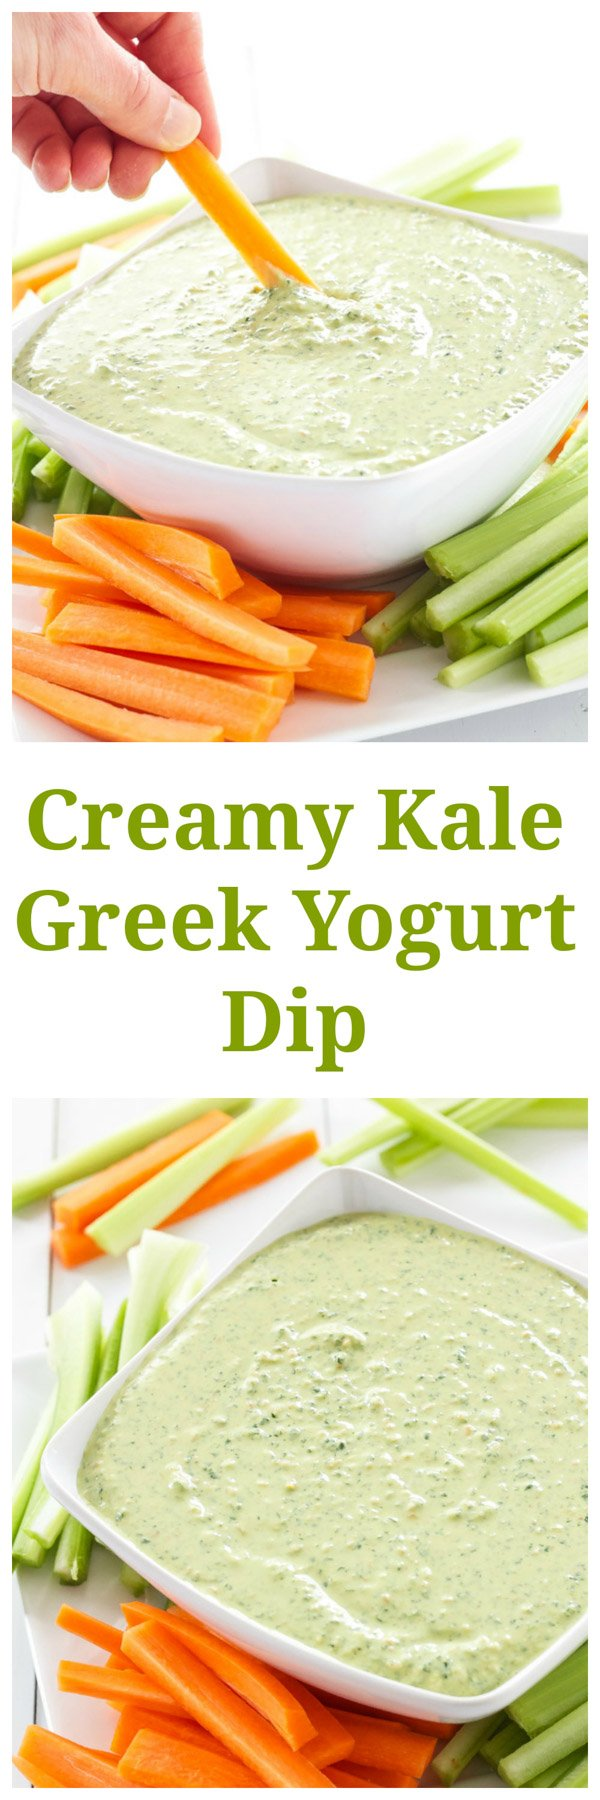 Creamy Kale Greek Yogurt Dip | Finally a dip you can feel good about eating! | www.reciperunner.com